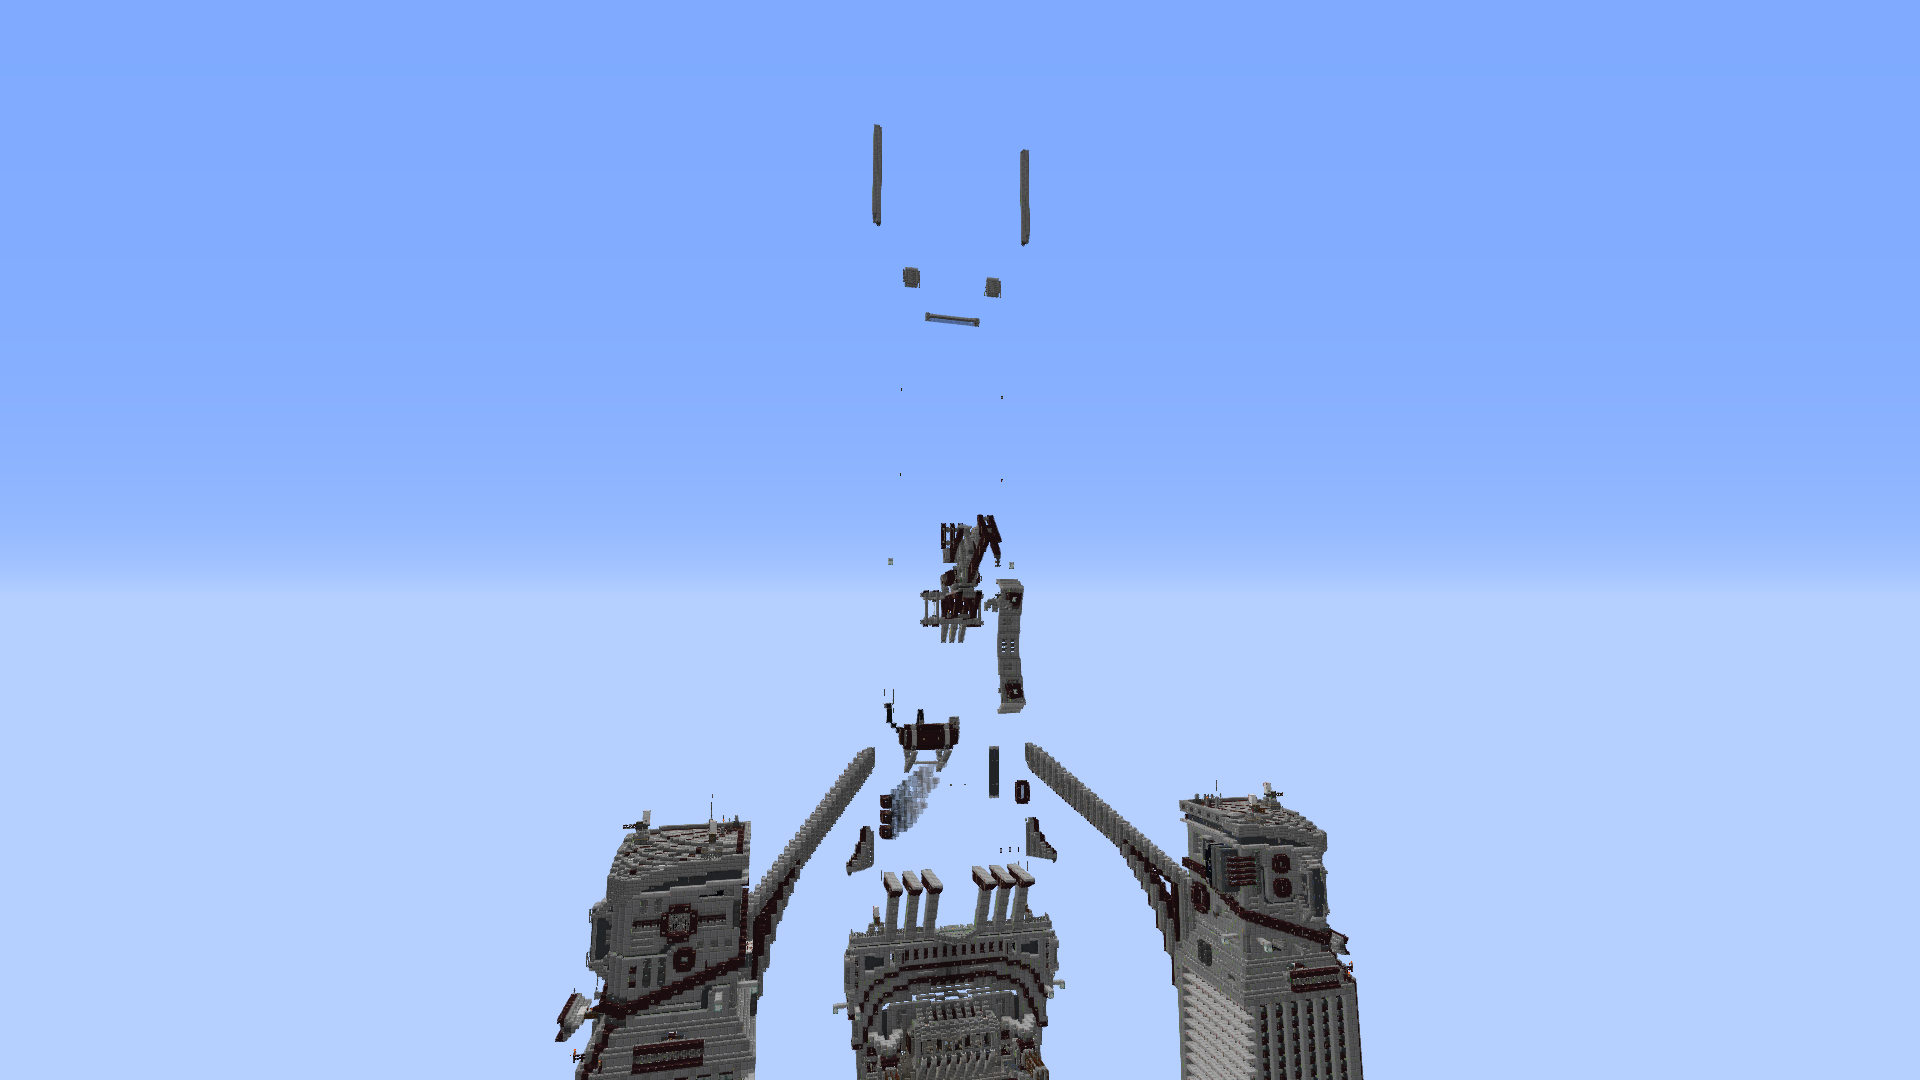 When chunks don't load properly